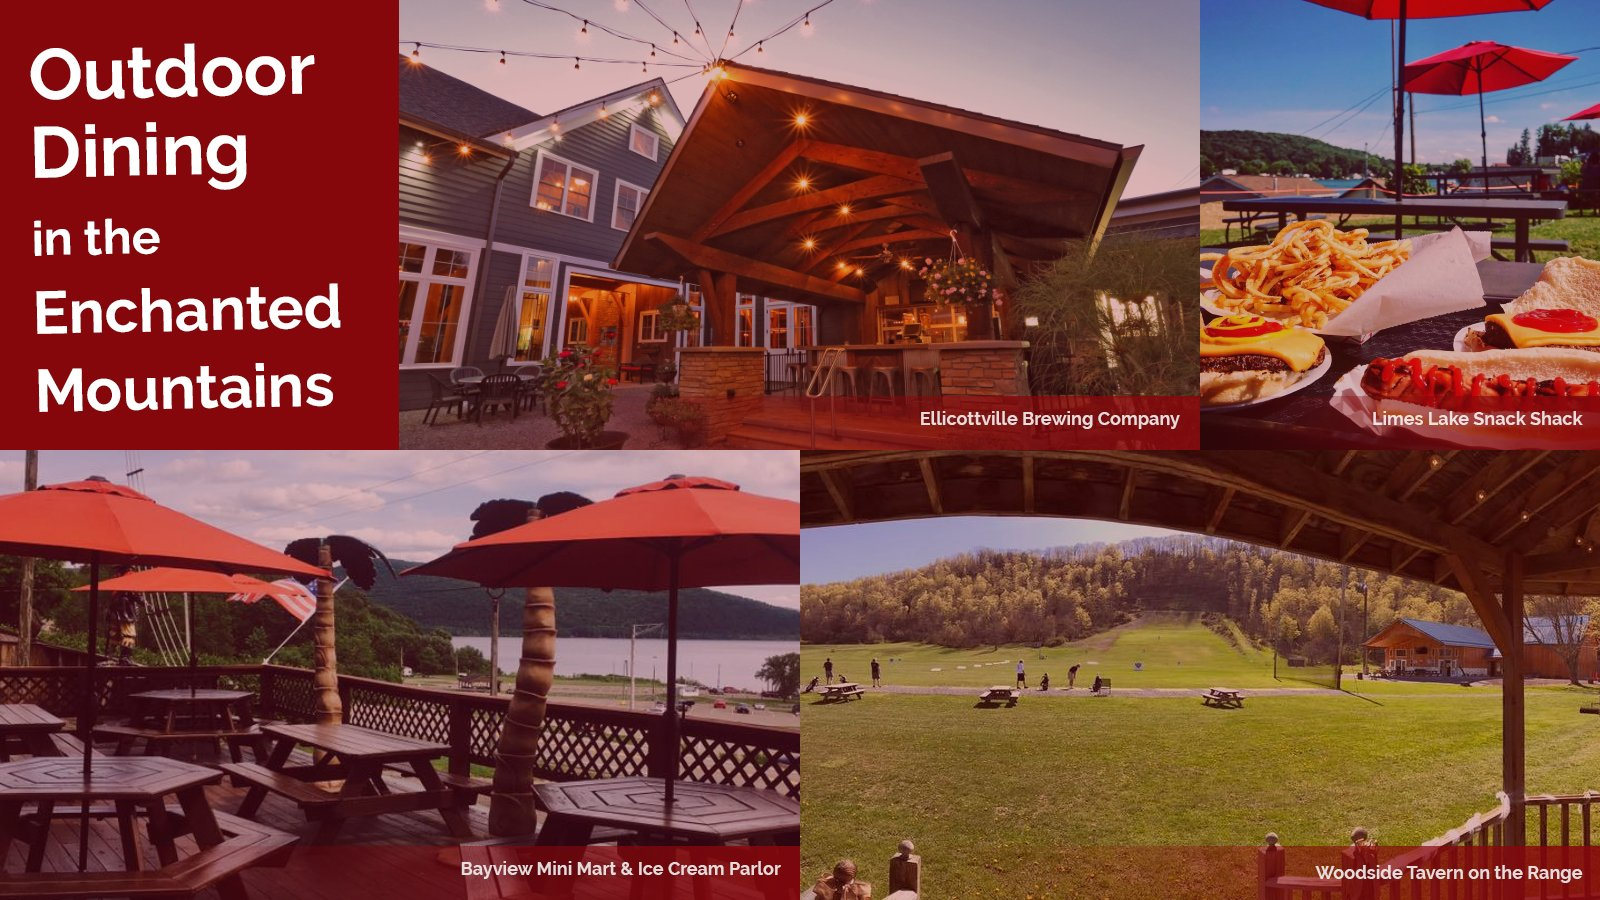 Outdoor Dining in the Enchanted Mountains: Ellicottville Brewing, Lime Lake Snack Shack, Bayview Mini Mart & Ice Cream Parlor, Woodside Tavern on the Range